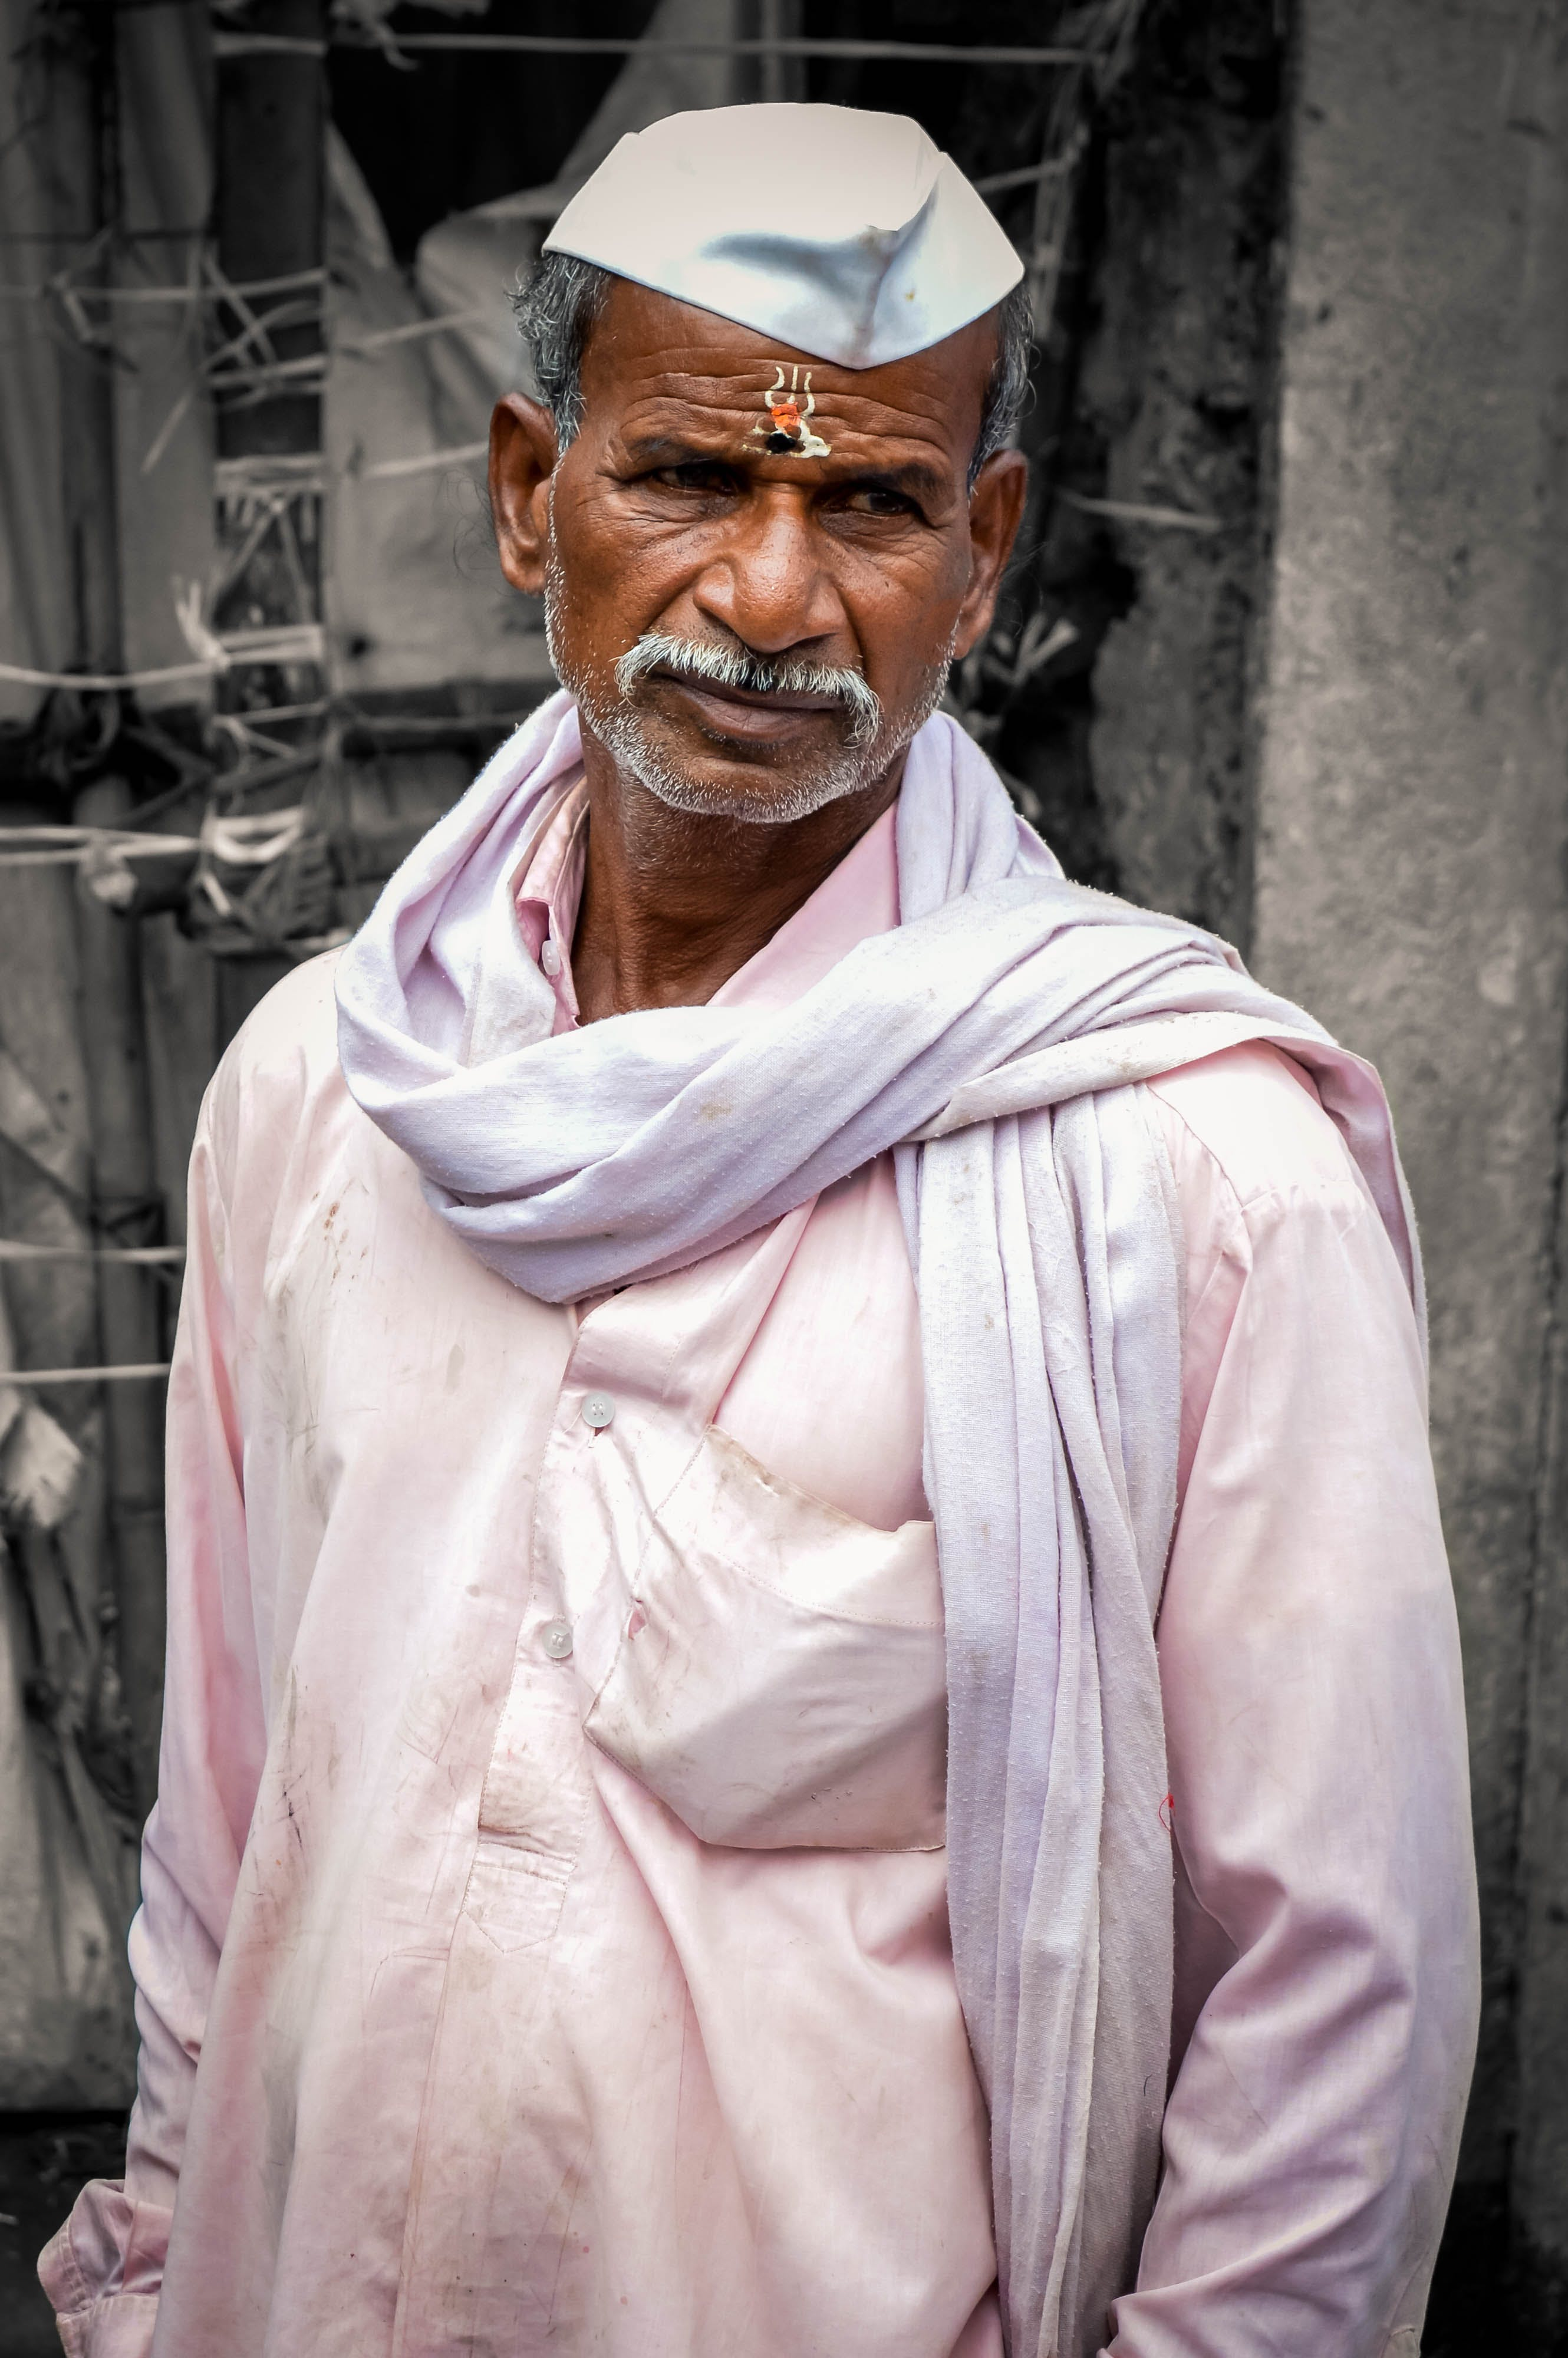 Free stock photo of man, person, street, old